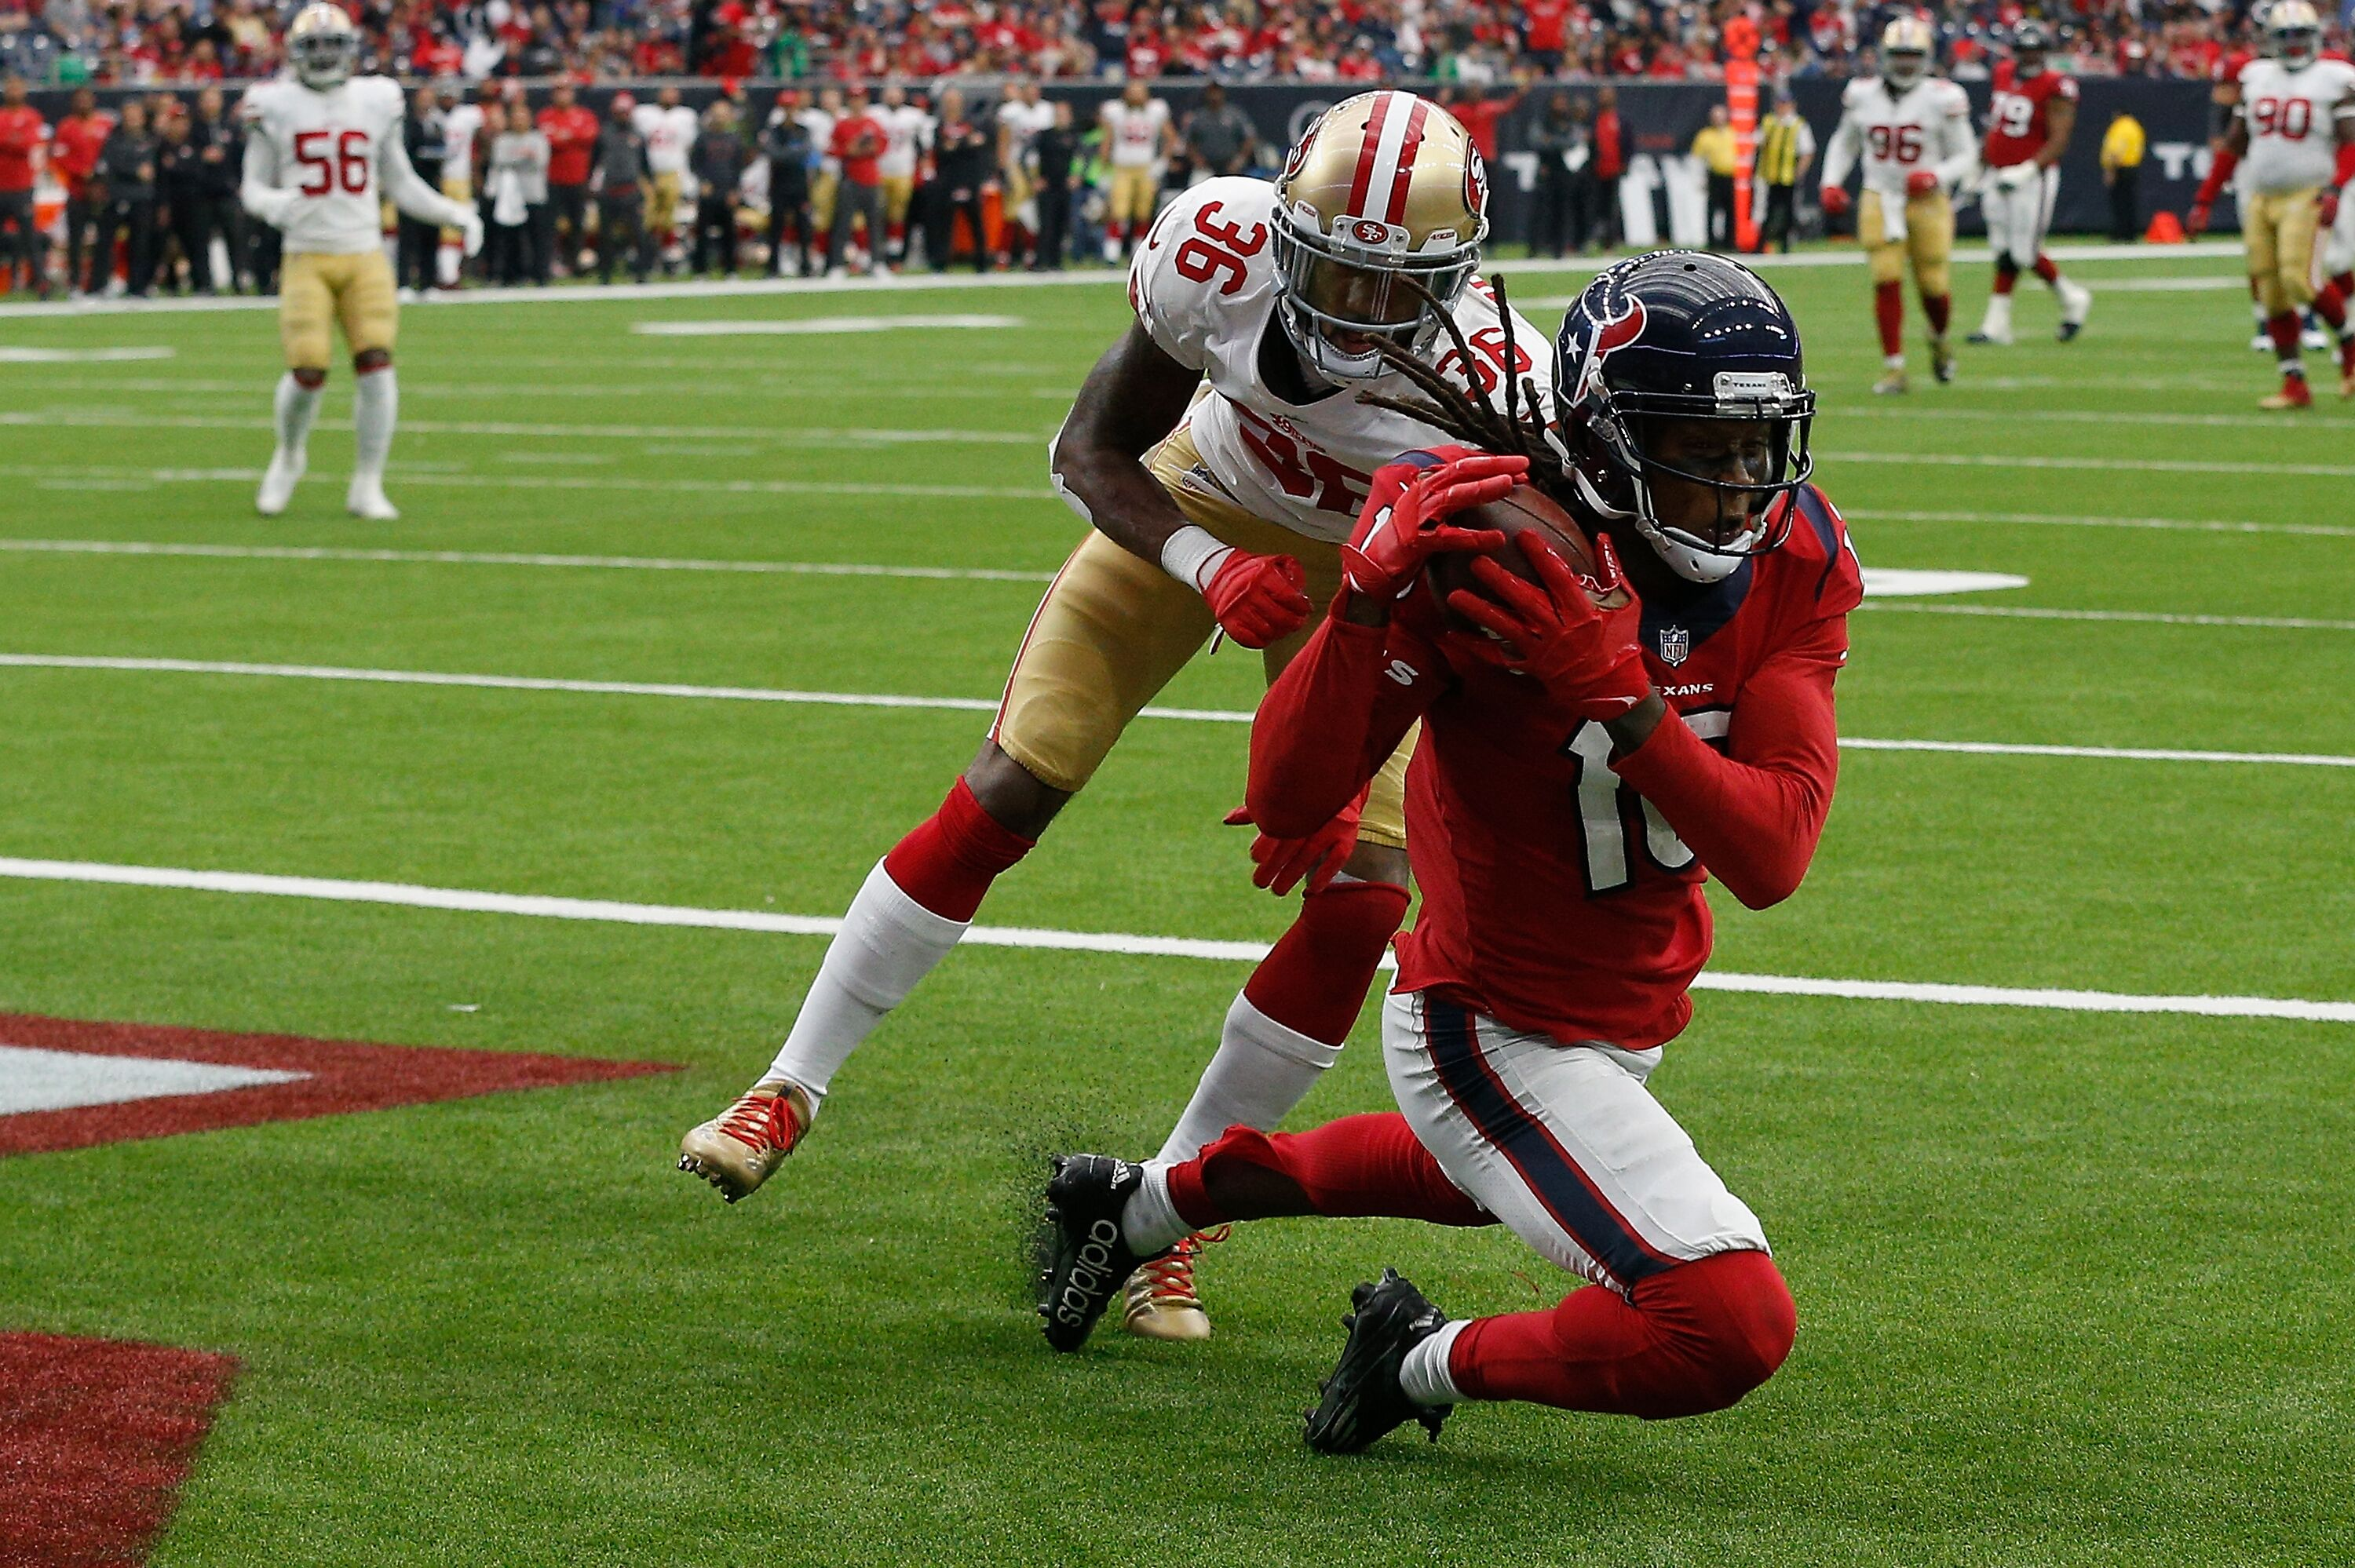 889644336-san-francisco-49ers-v-houston-texan.jpg